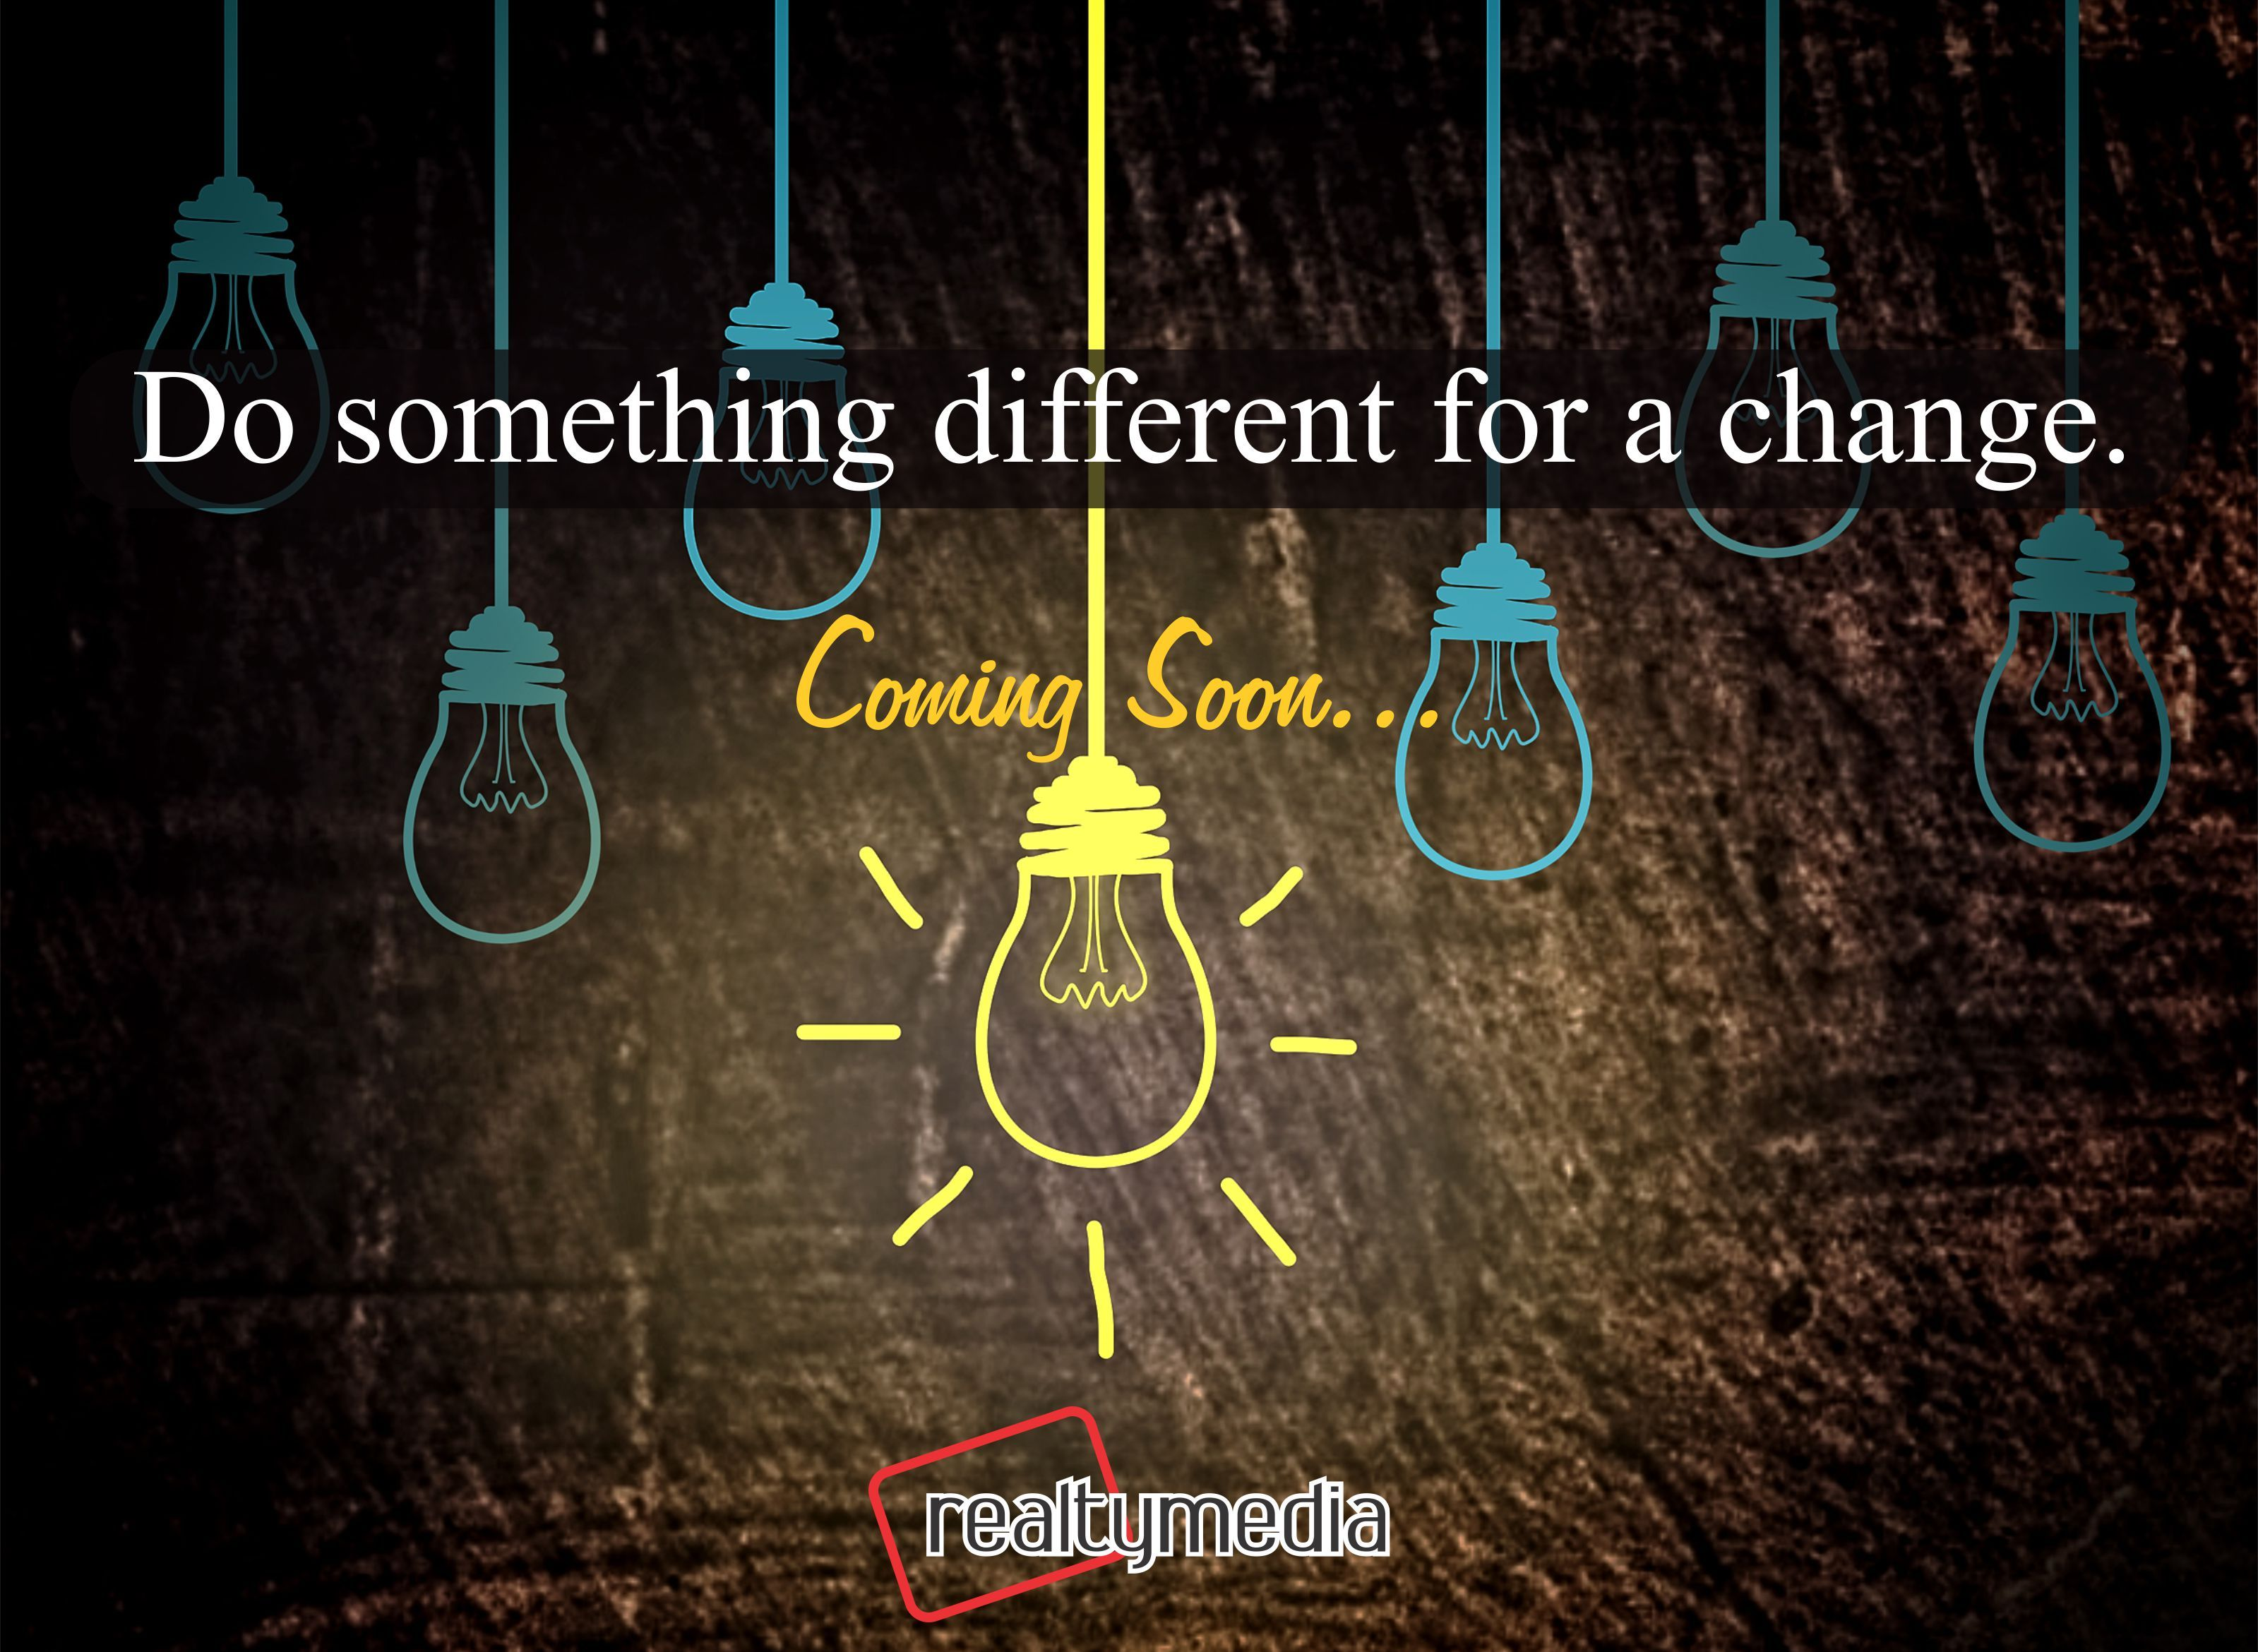 If You Want Change, Get Up And Do Something Different. #realtymedia